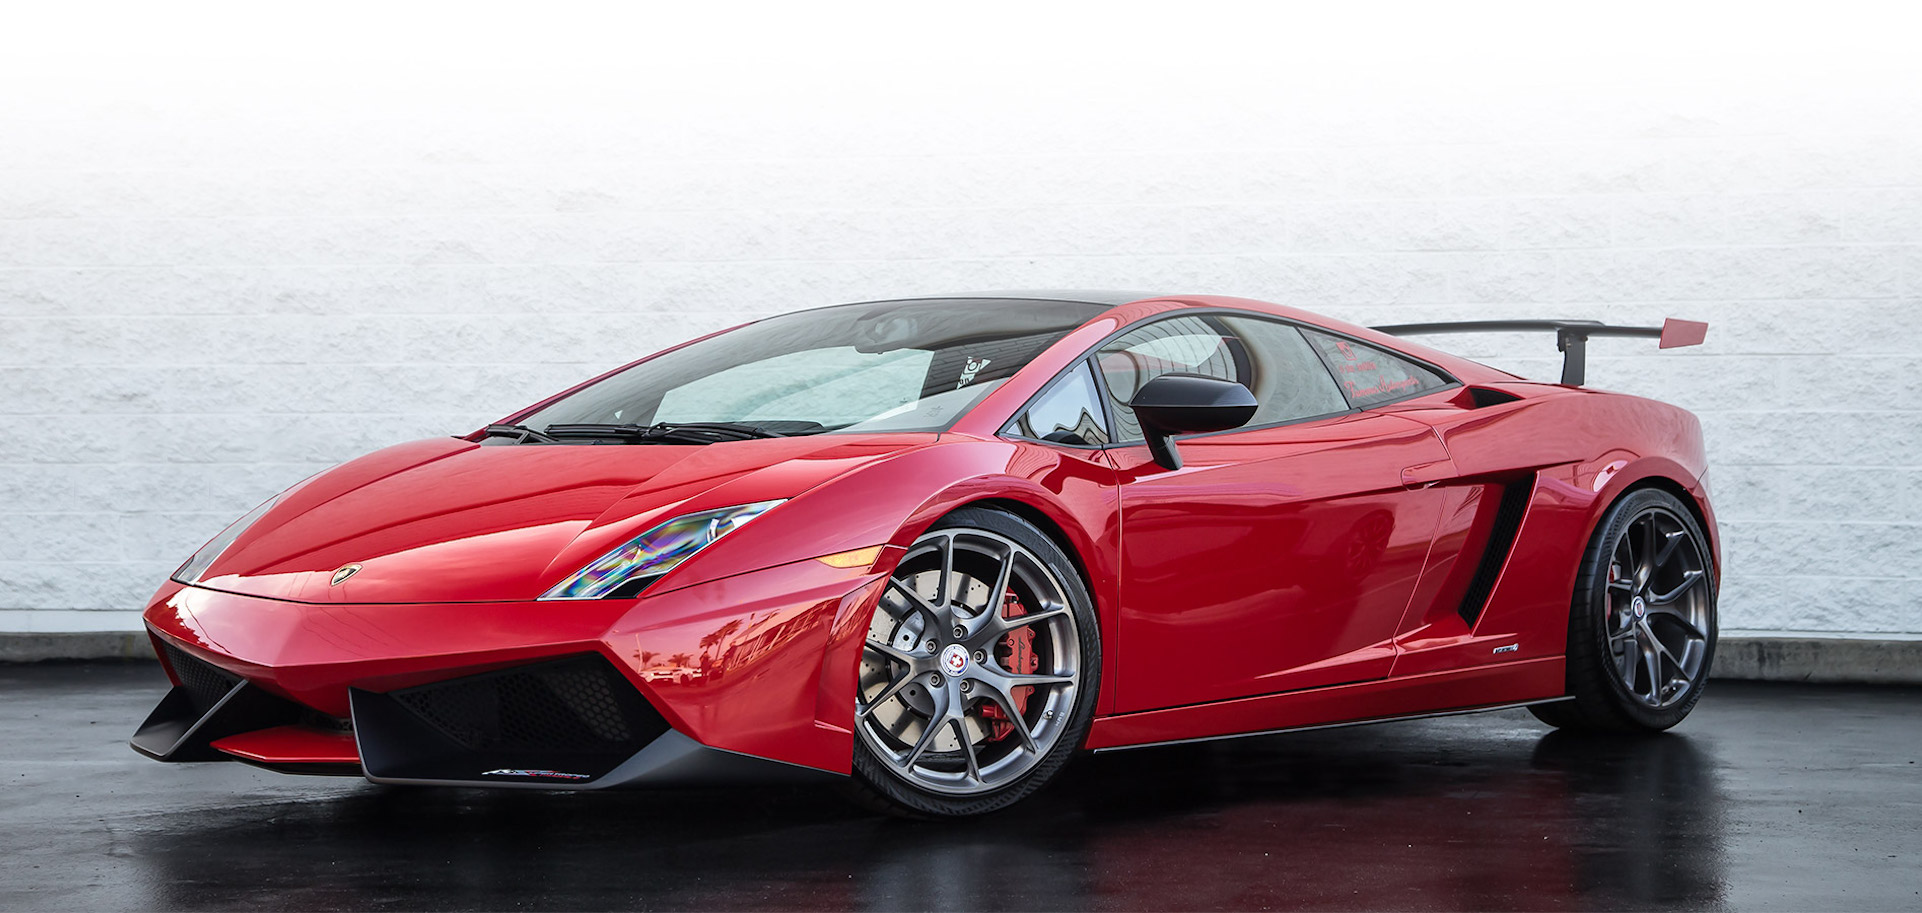 car paint protection on red lamborghini